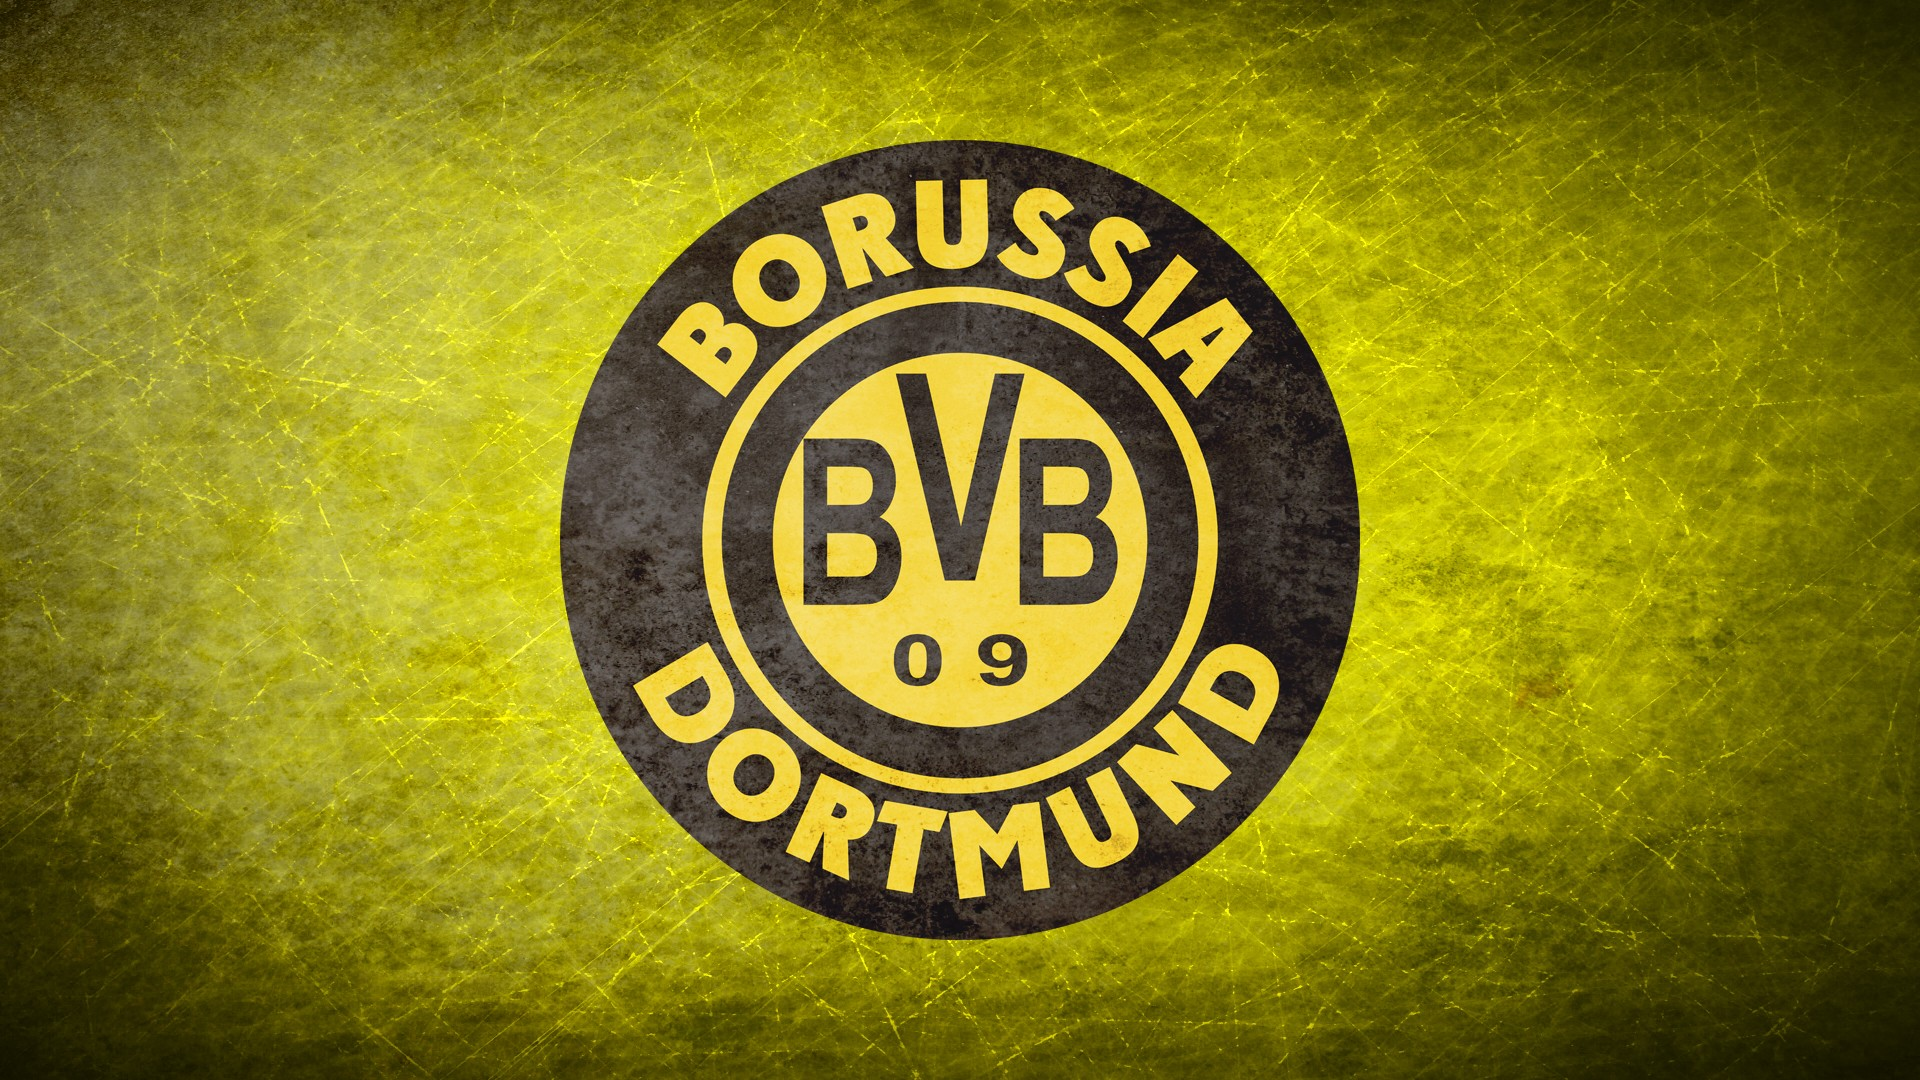 Borussia Dortmund Wallpapers and Background Images   stmednet 1920x1080